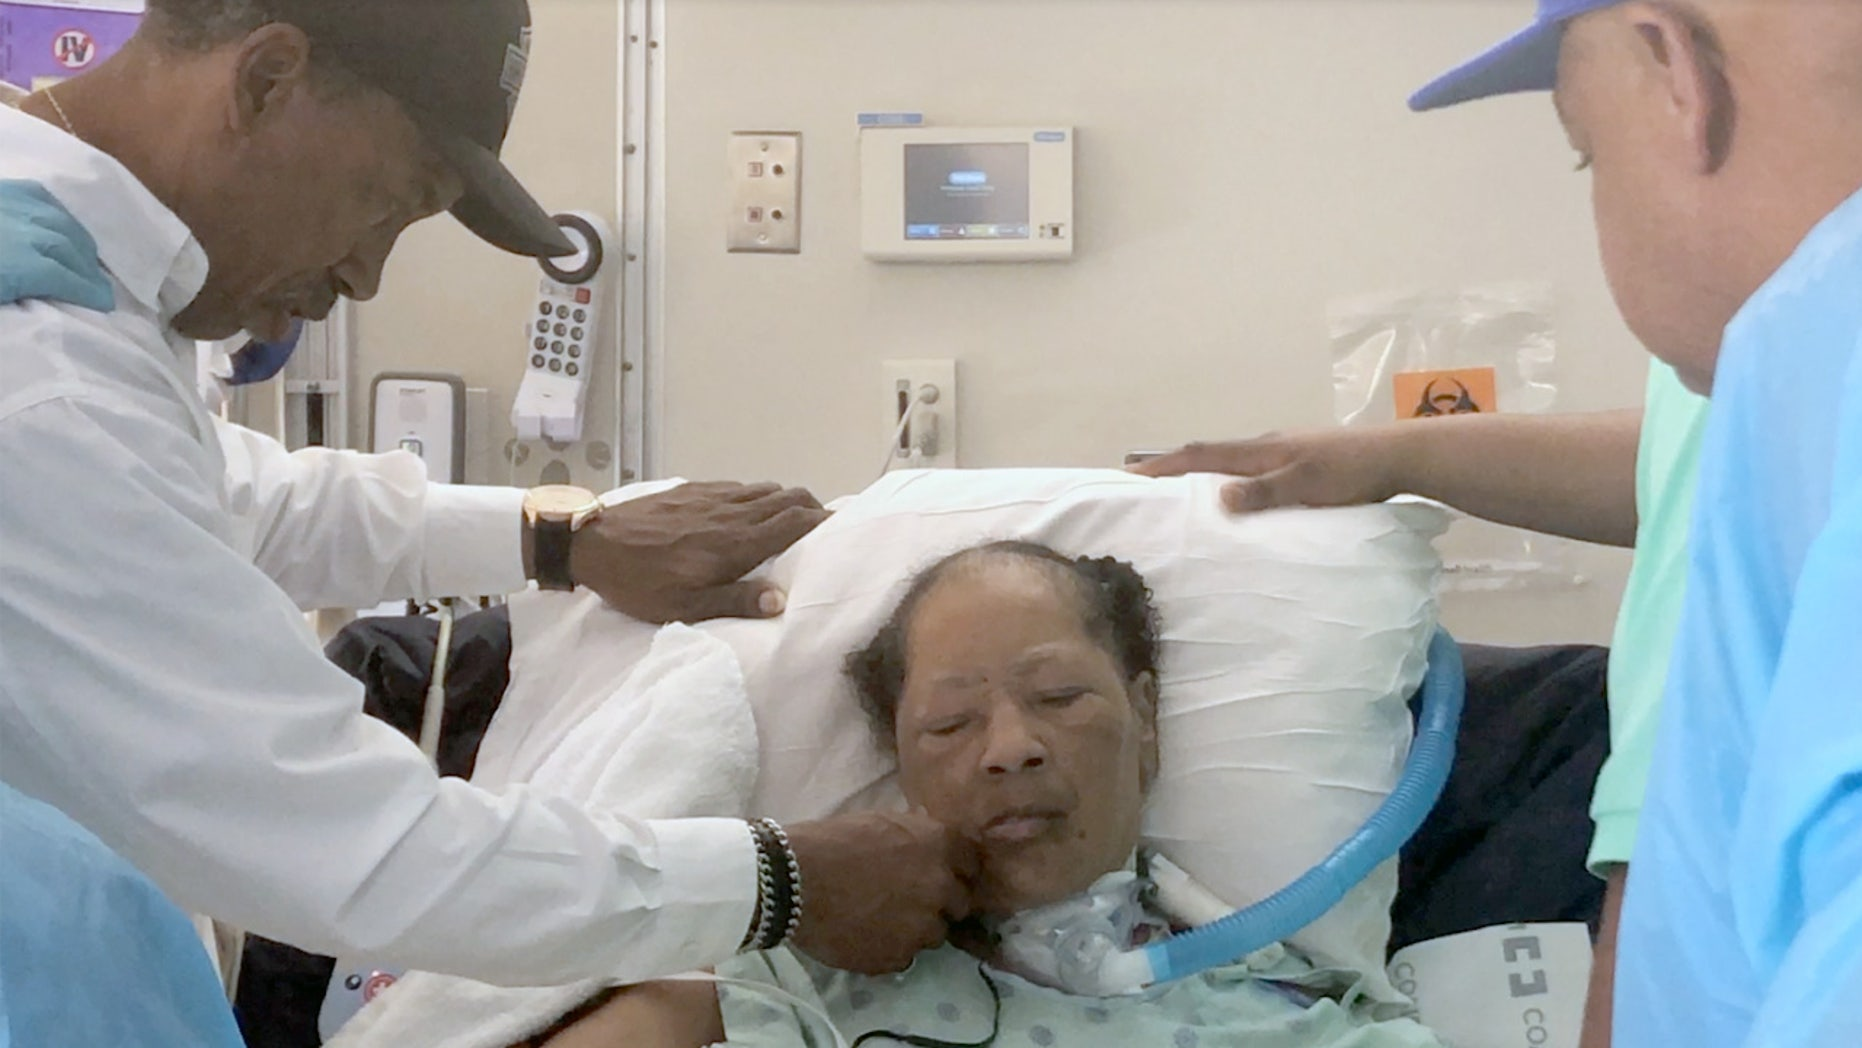 Carolyn Jones, 61, fights for her life after a Houston hospital pulled the plug against her family's wishes. Her husband of 40 years, Donald, is on her left.